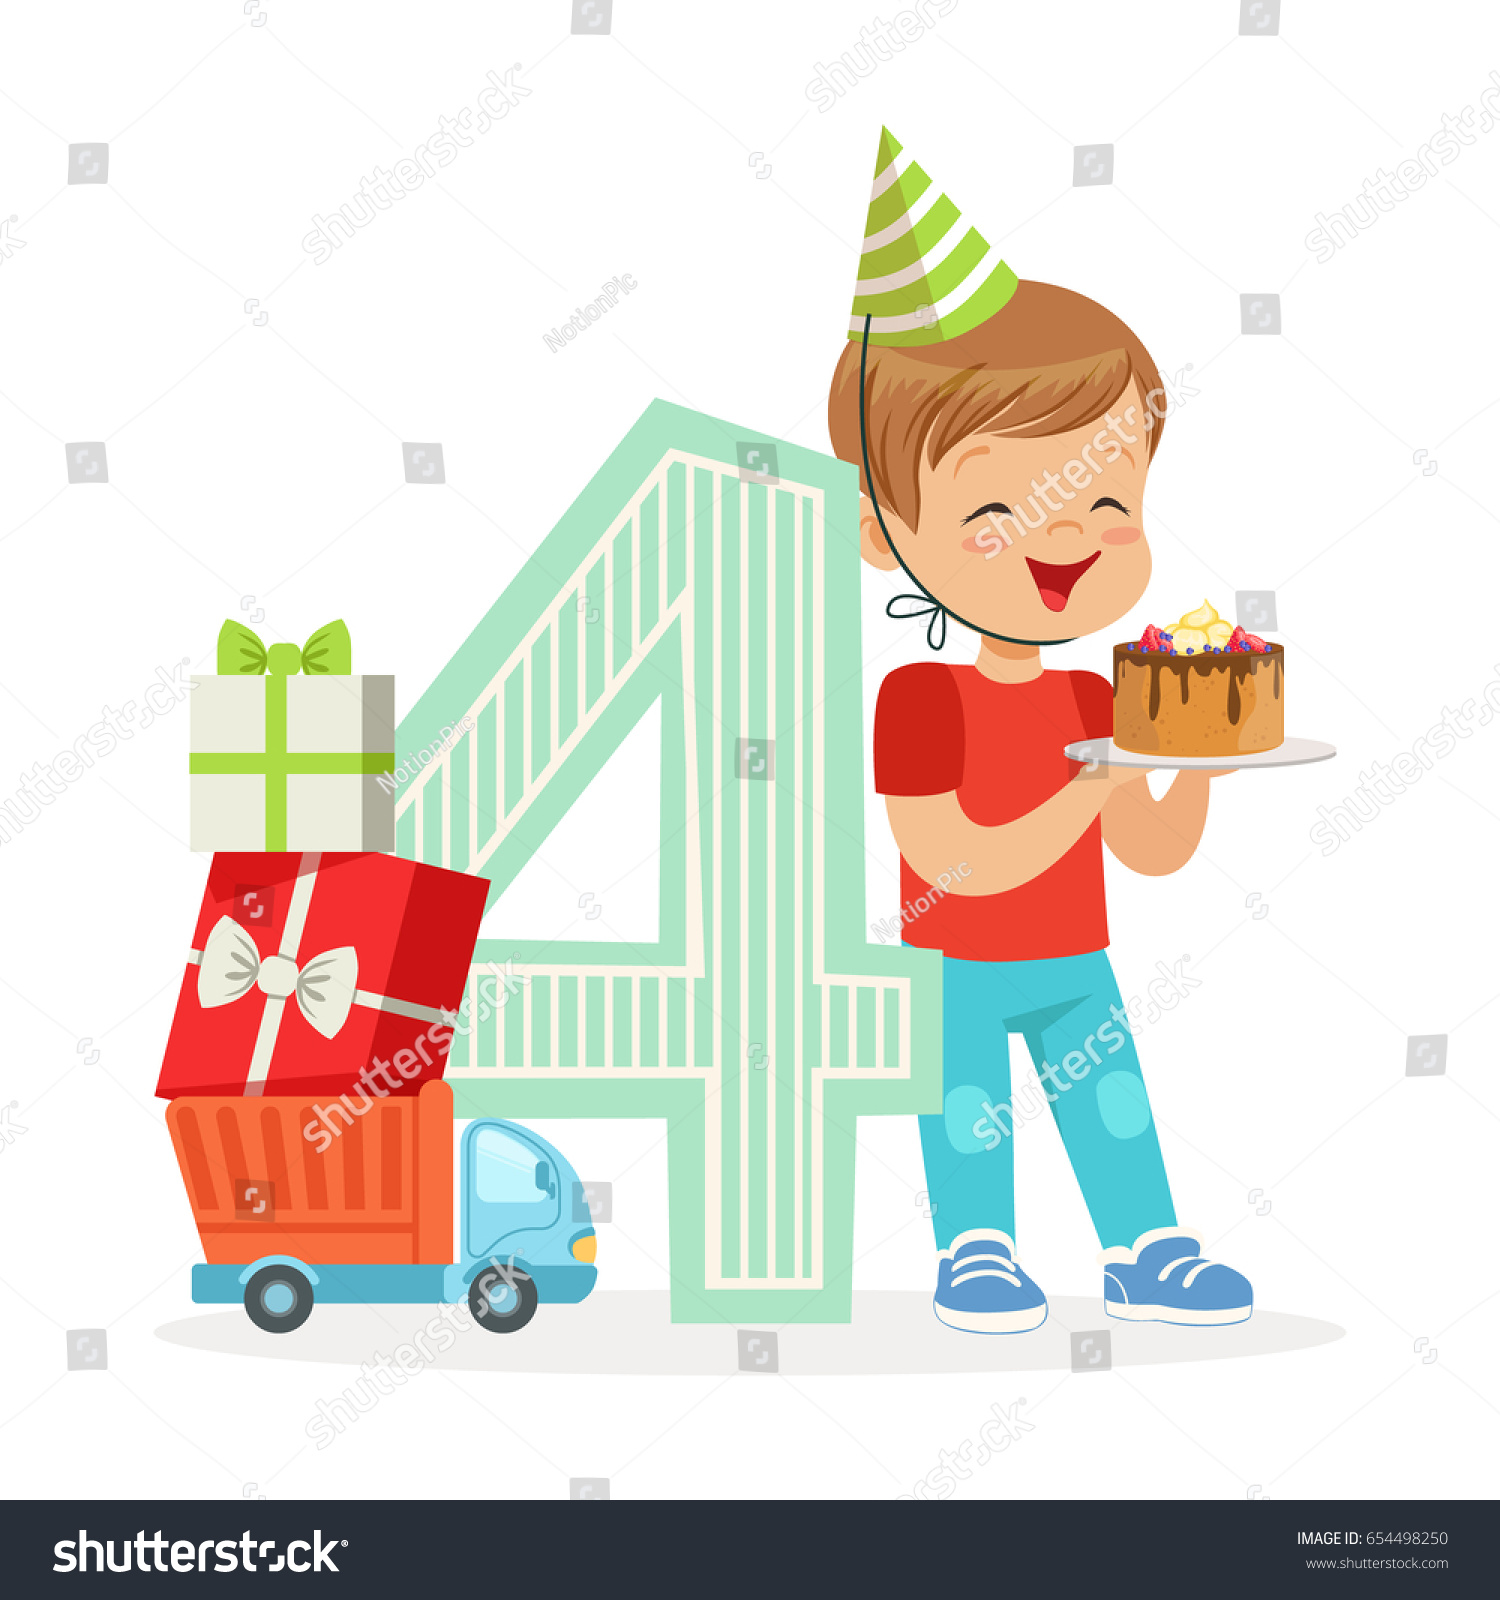 Adorable Four Year Old Boy Celebrating His Birthday With Cake Colorful Cartoon Character Vector